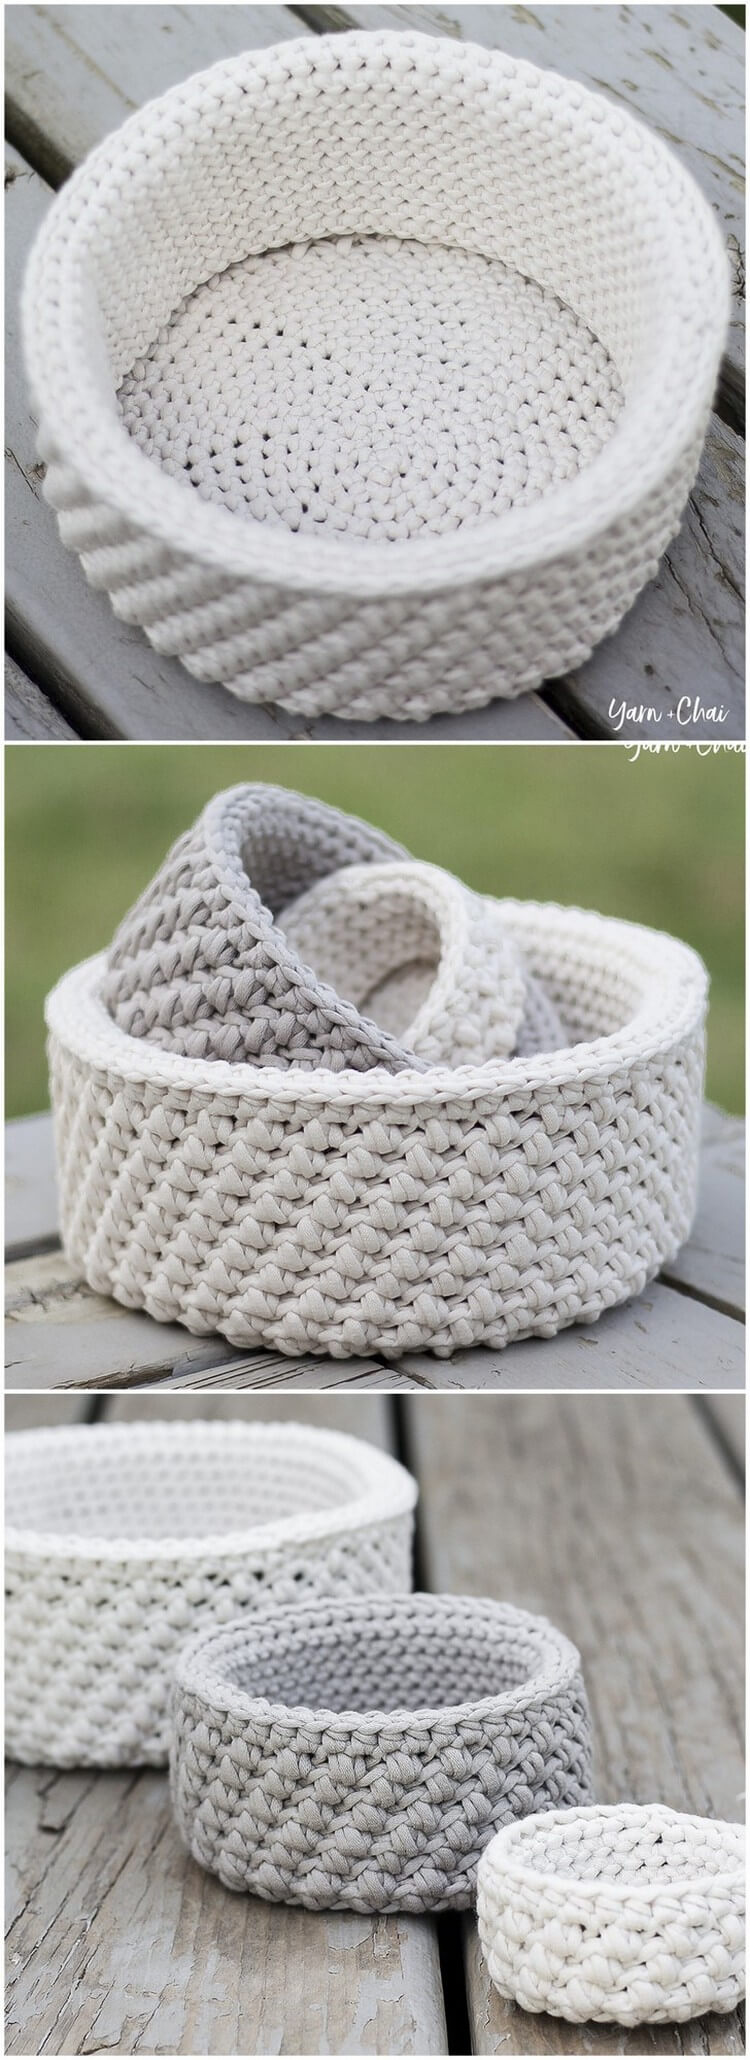 Crochet Basket Pattern (21)